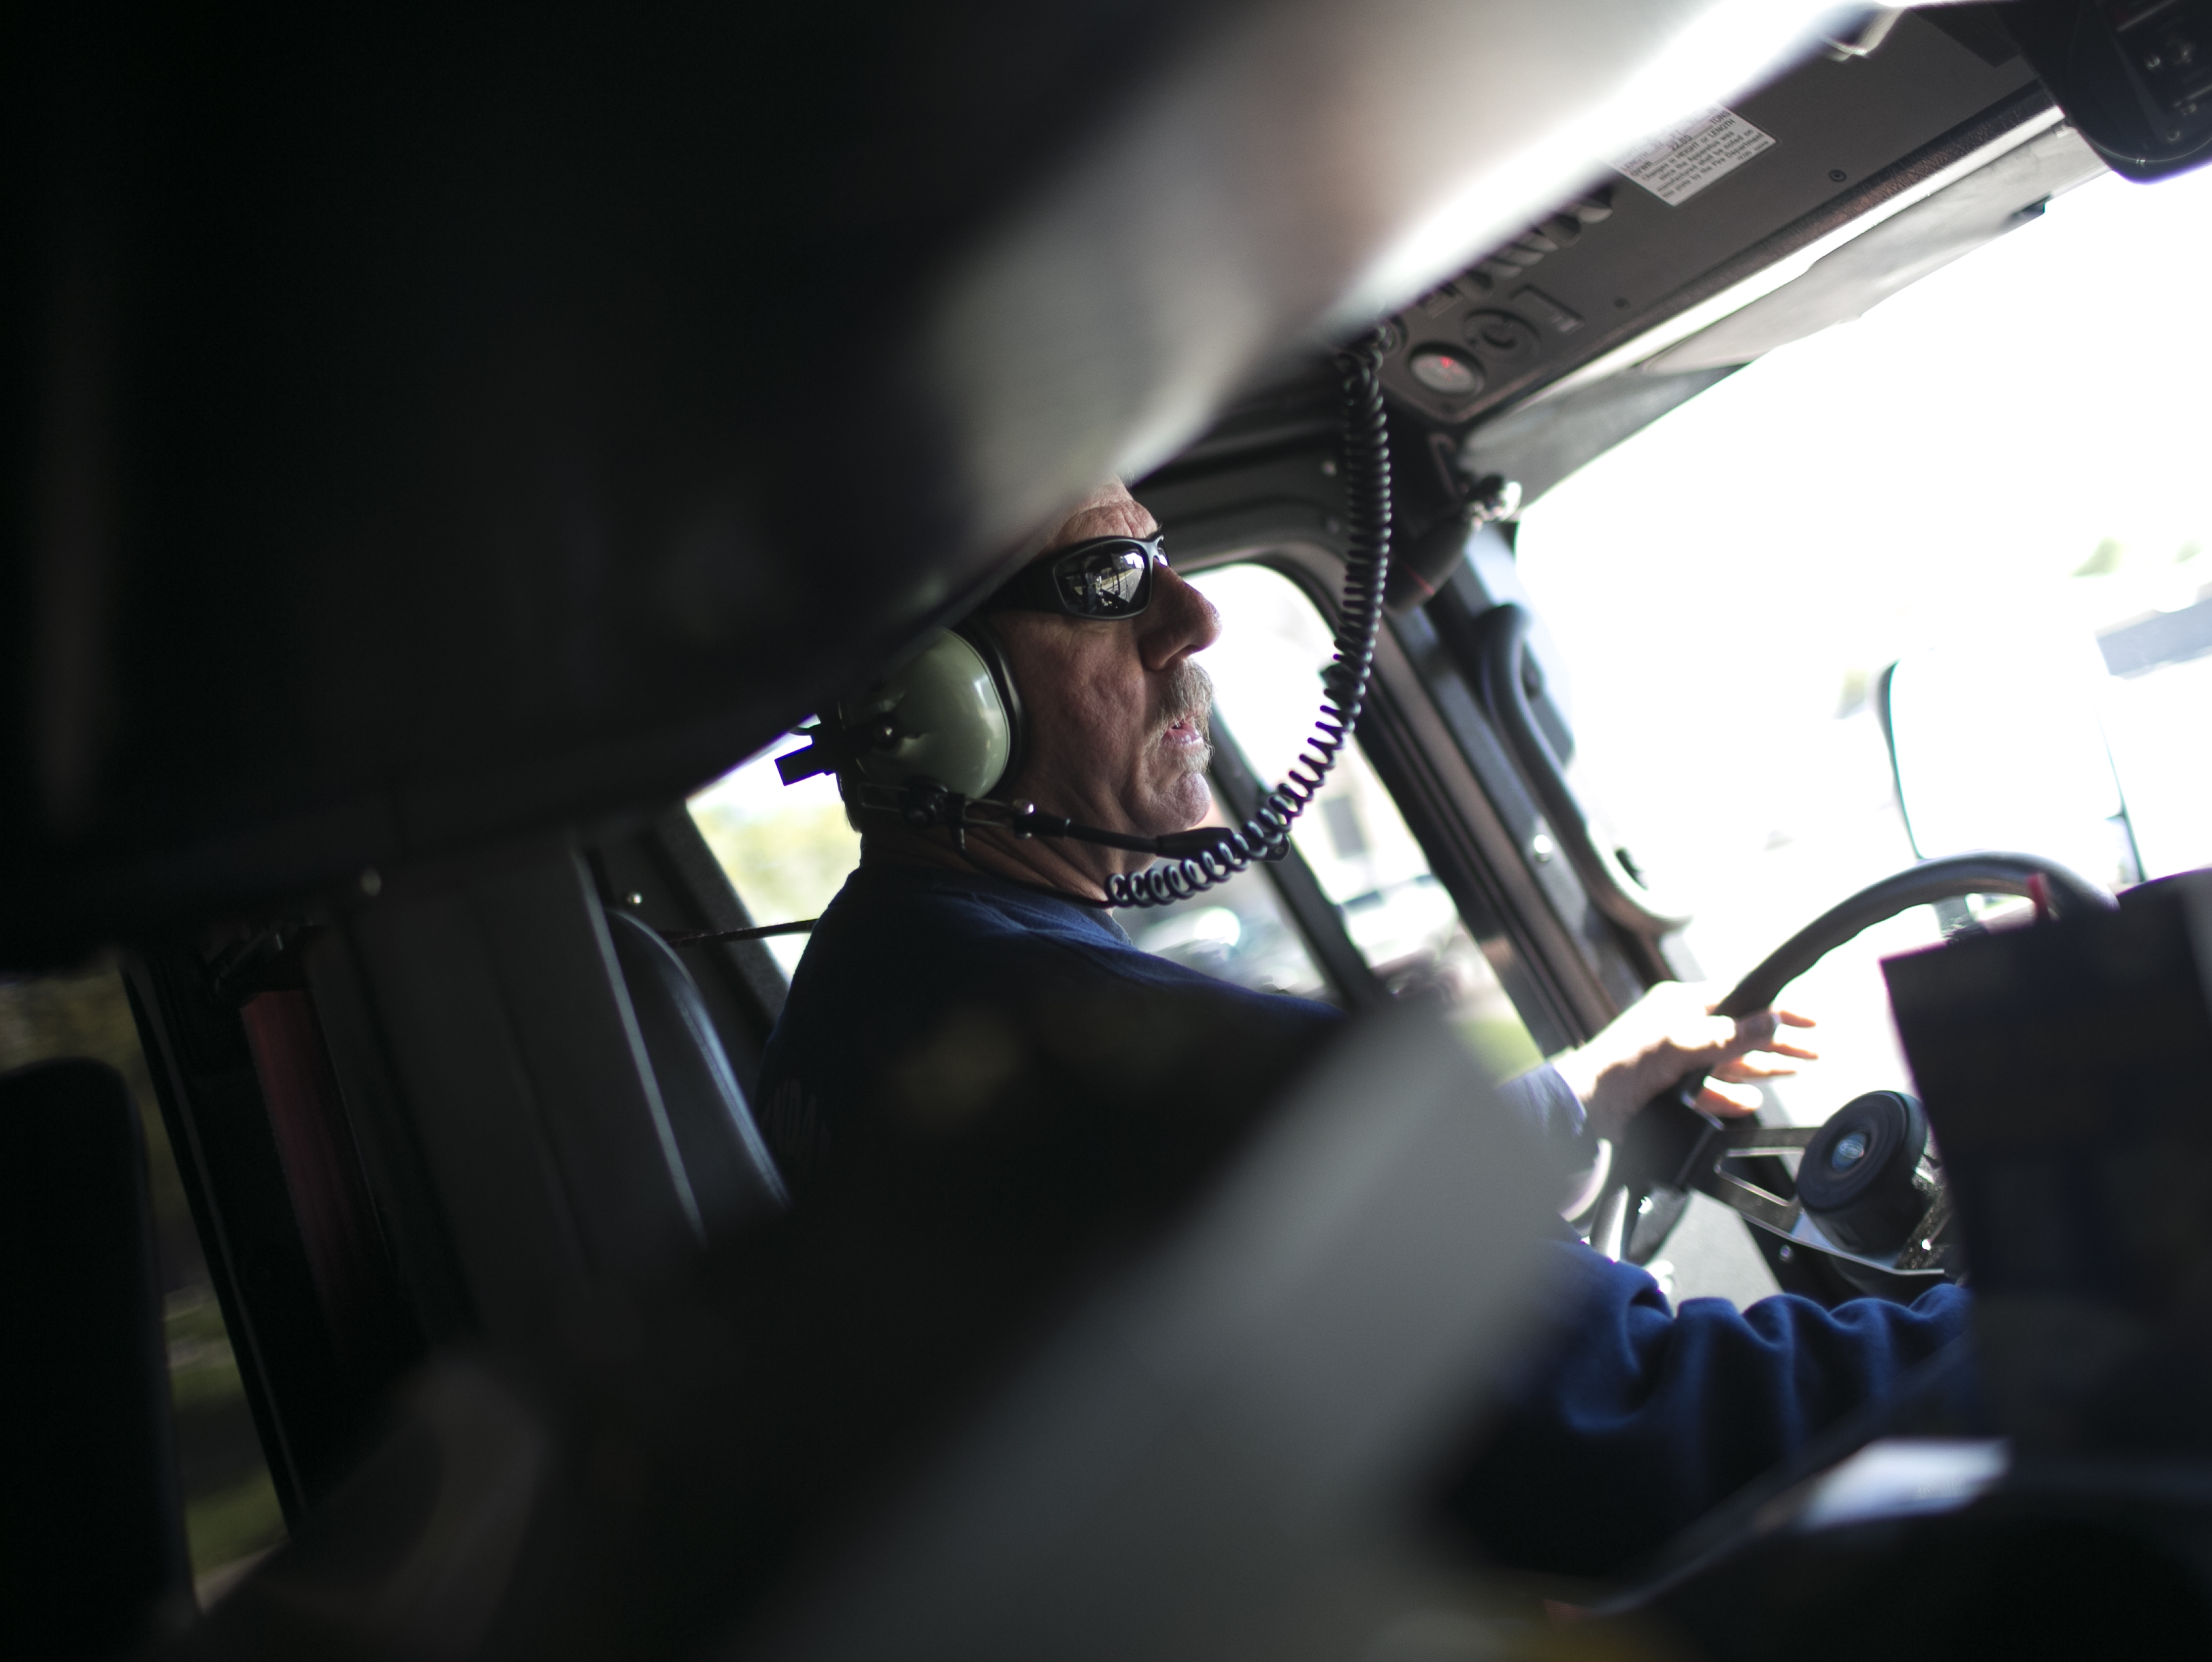 Firefighter Jim Strong drives a fire truck on a call with Glendale Fire Department 154 on Feb. 7, 2019, in Glendale.